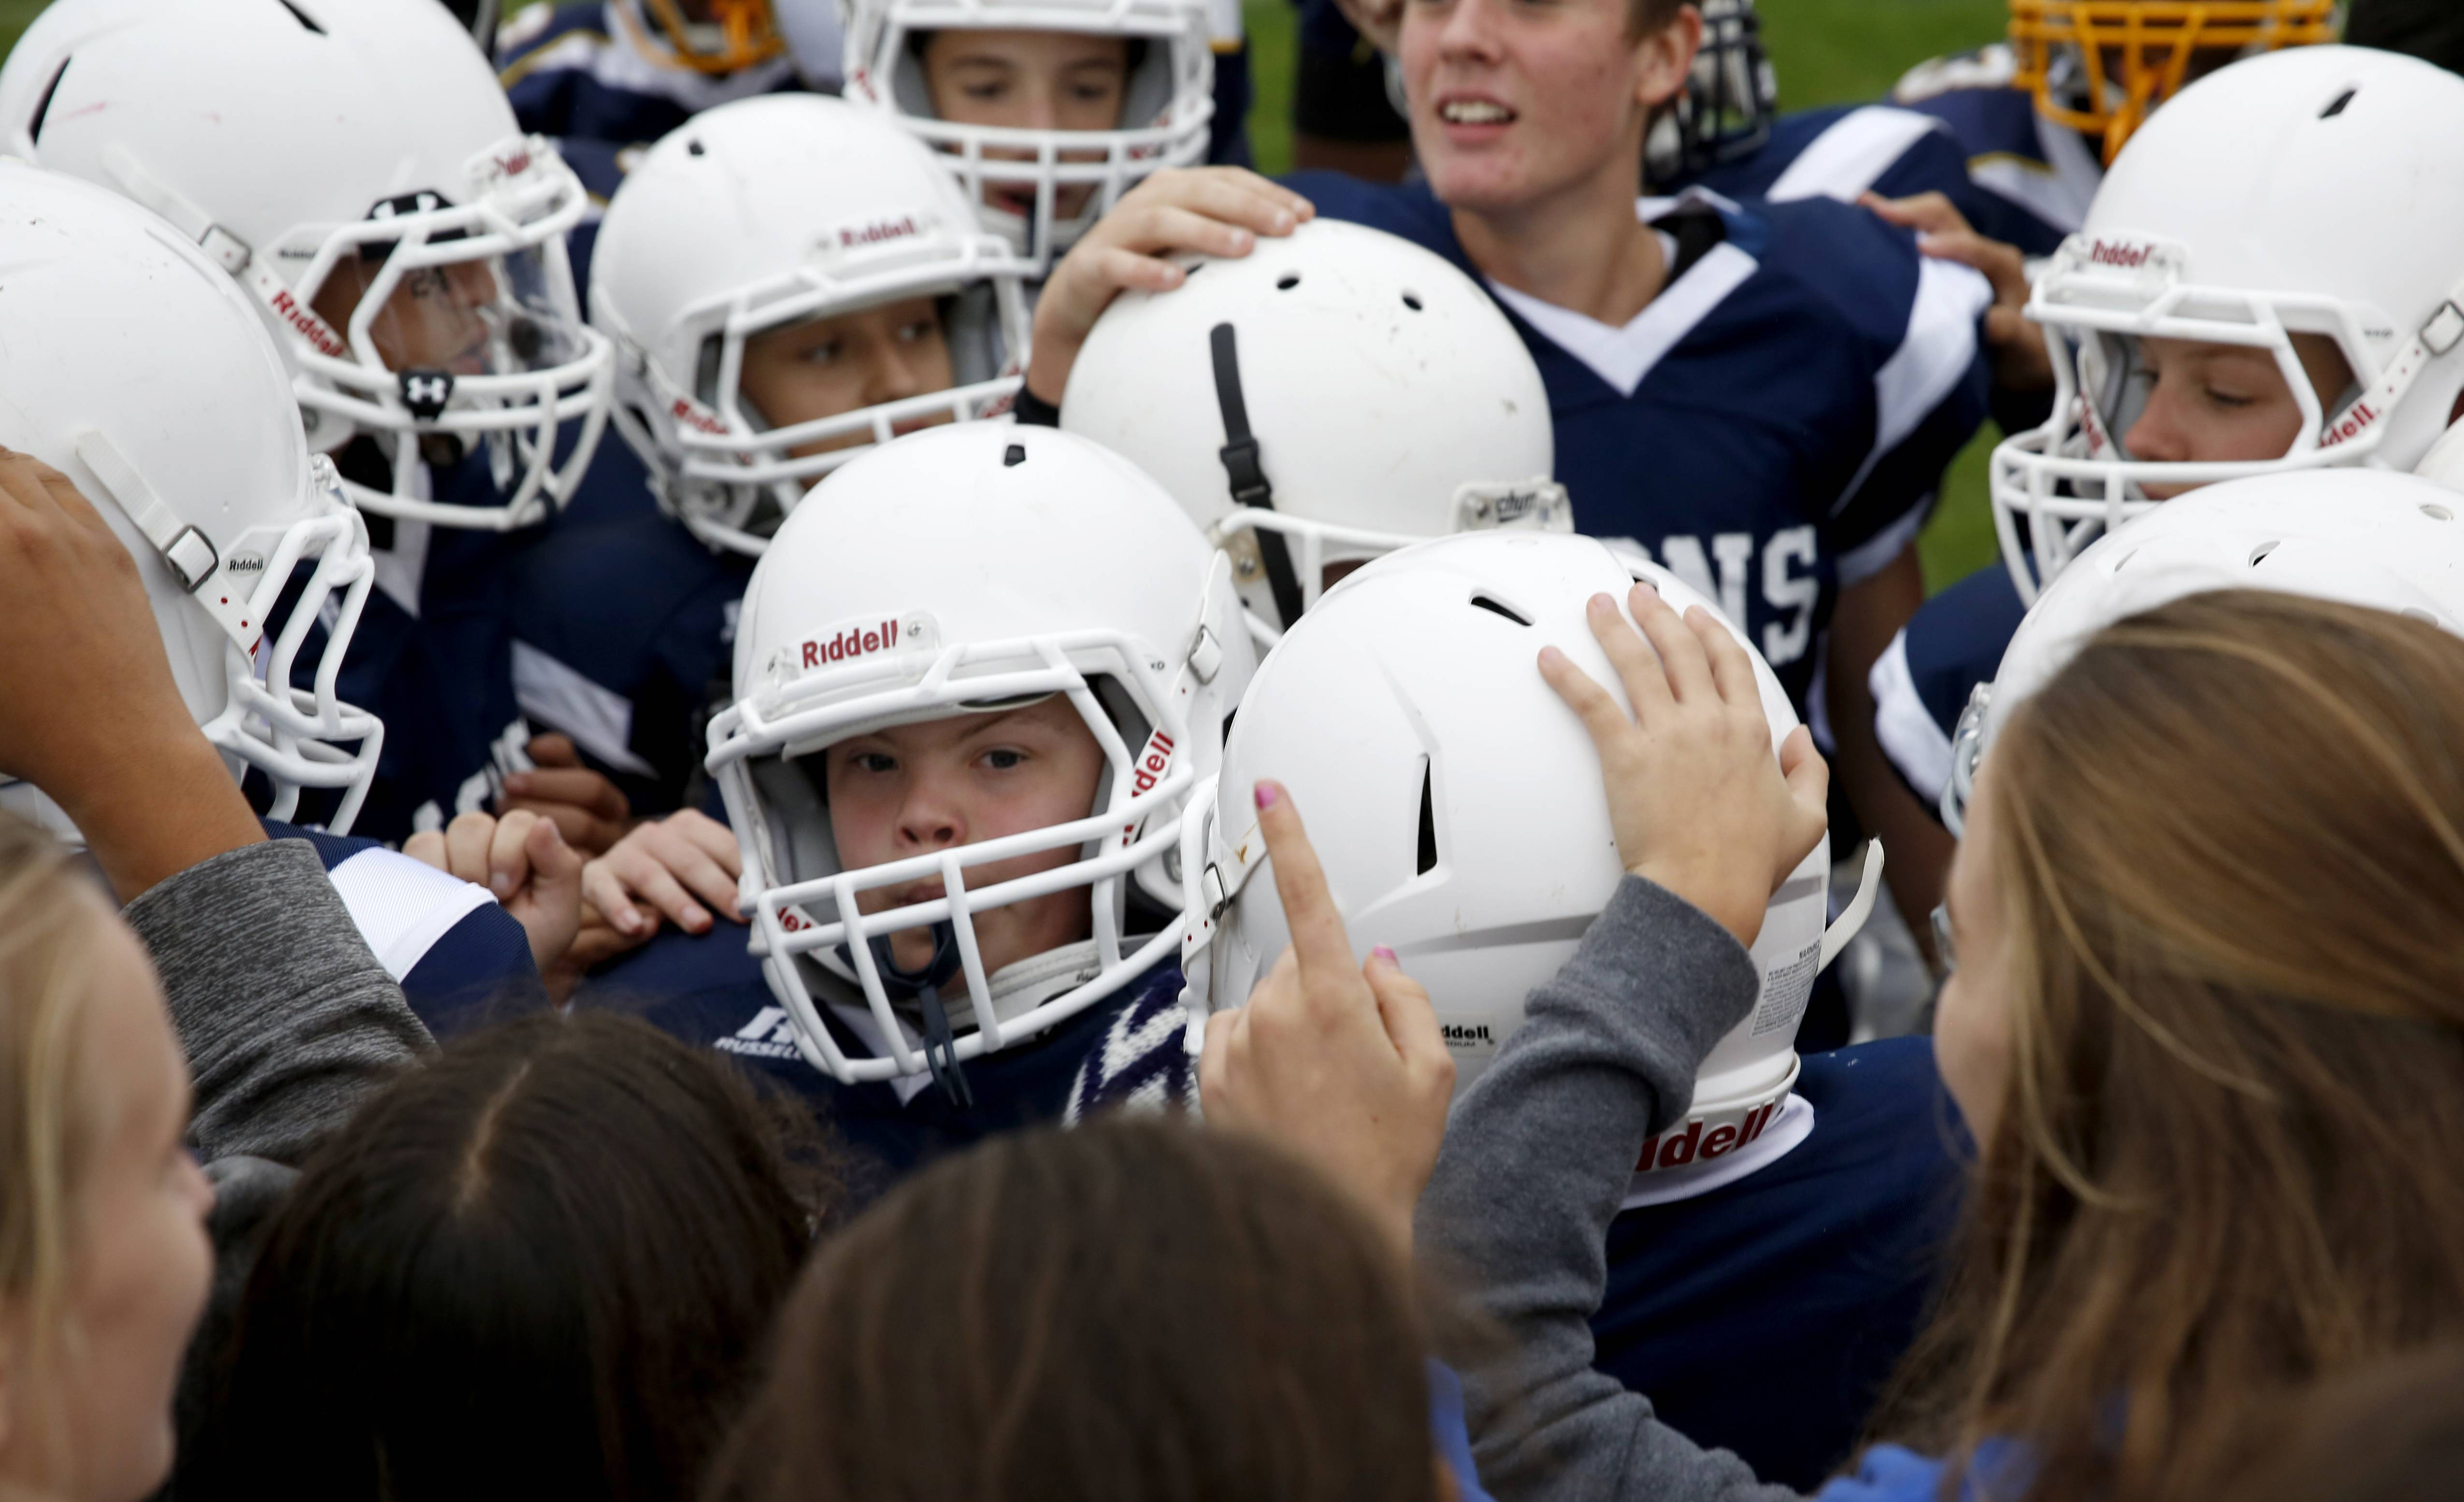 Jake Skonieczny, a Lisle Junior High School student with Down syndrome, is congratulated by teammates and fans after scoring a second quarter touchdown.